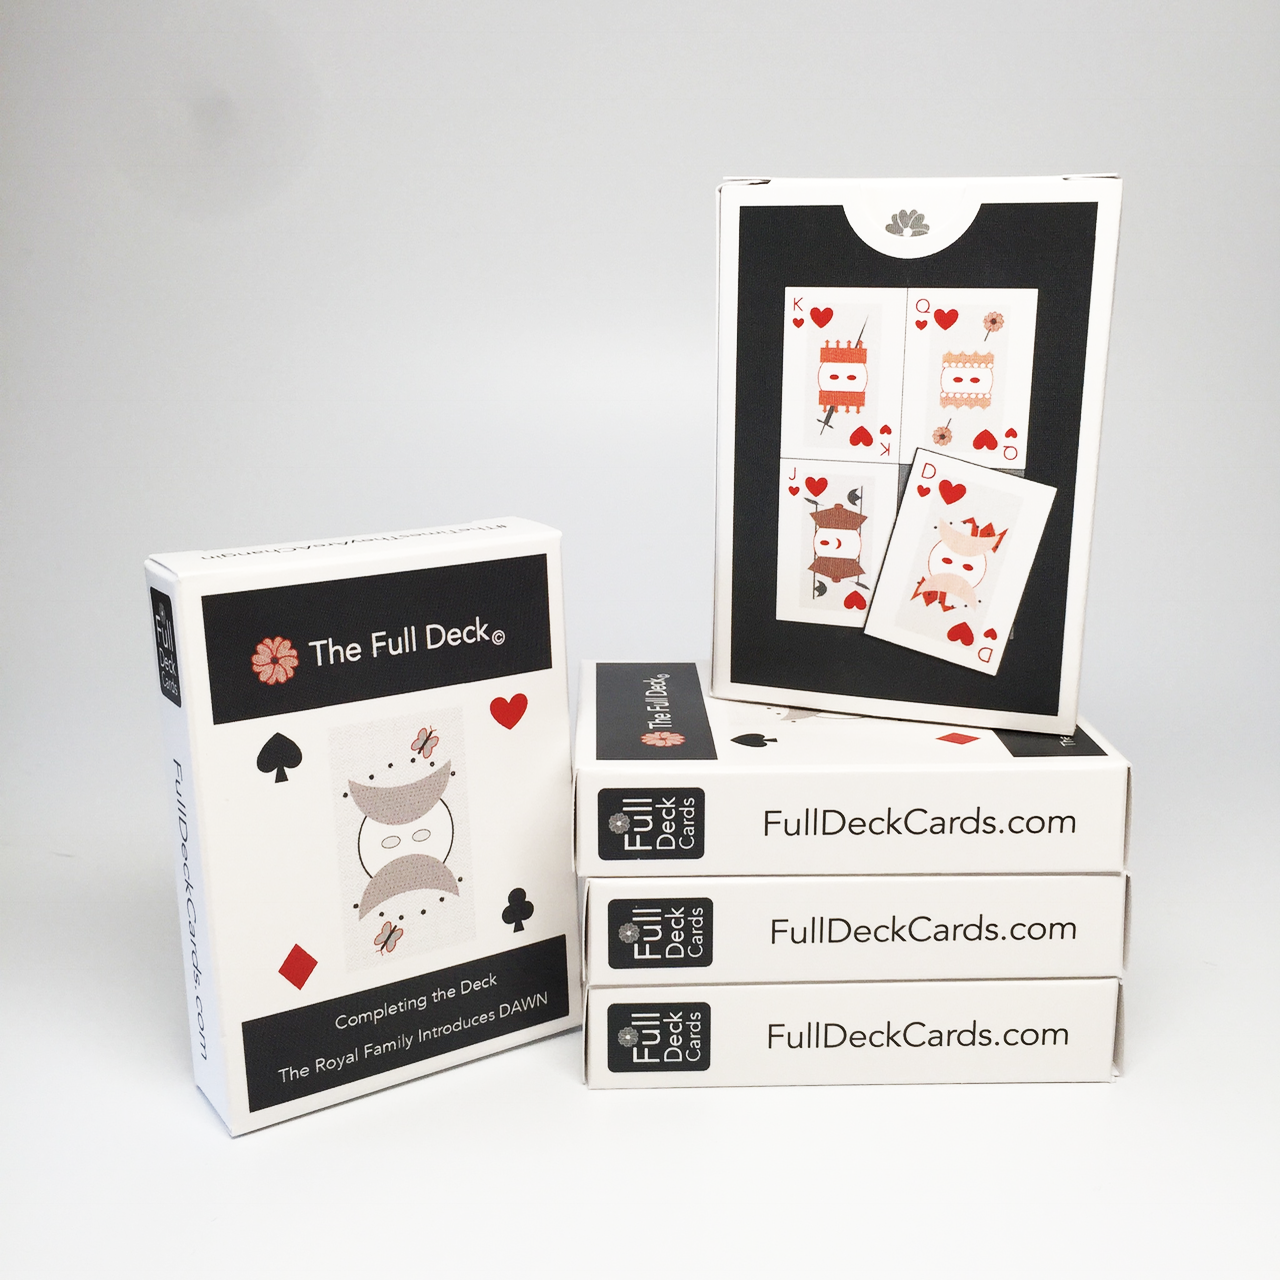 Five Decks - For My Family - $90 - Save 10% - Free Shipping